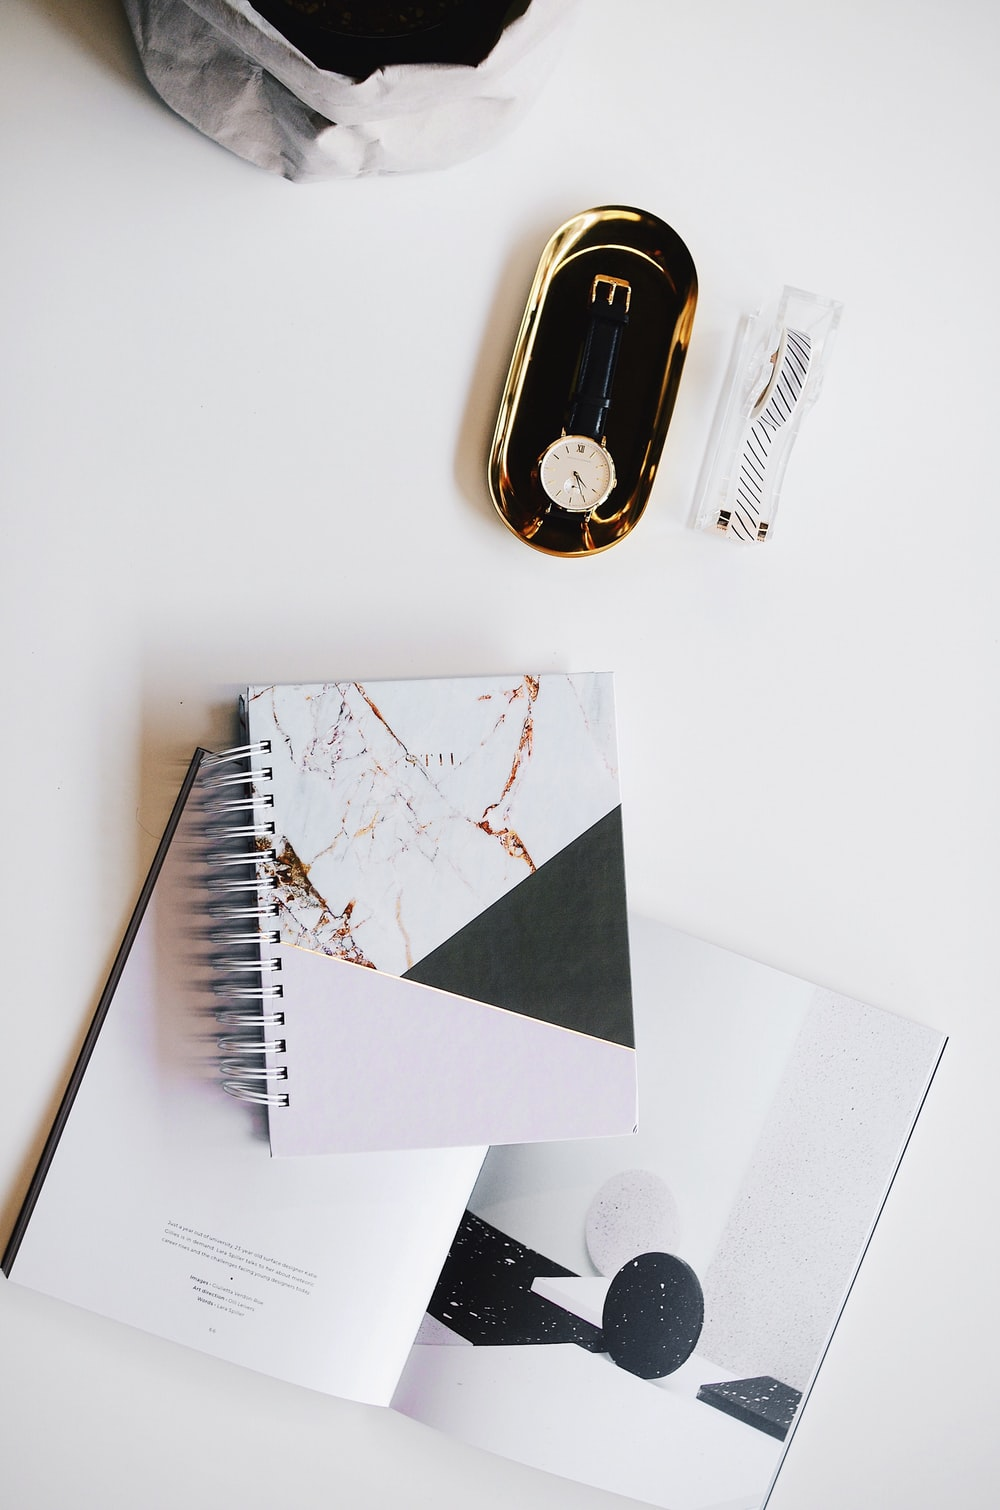 top view photography of round silver-colored analog watch with black leather strap on case near white covered notebook